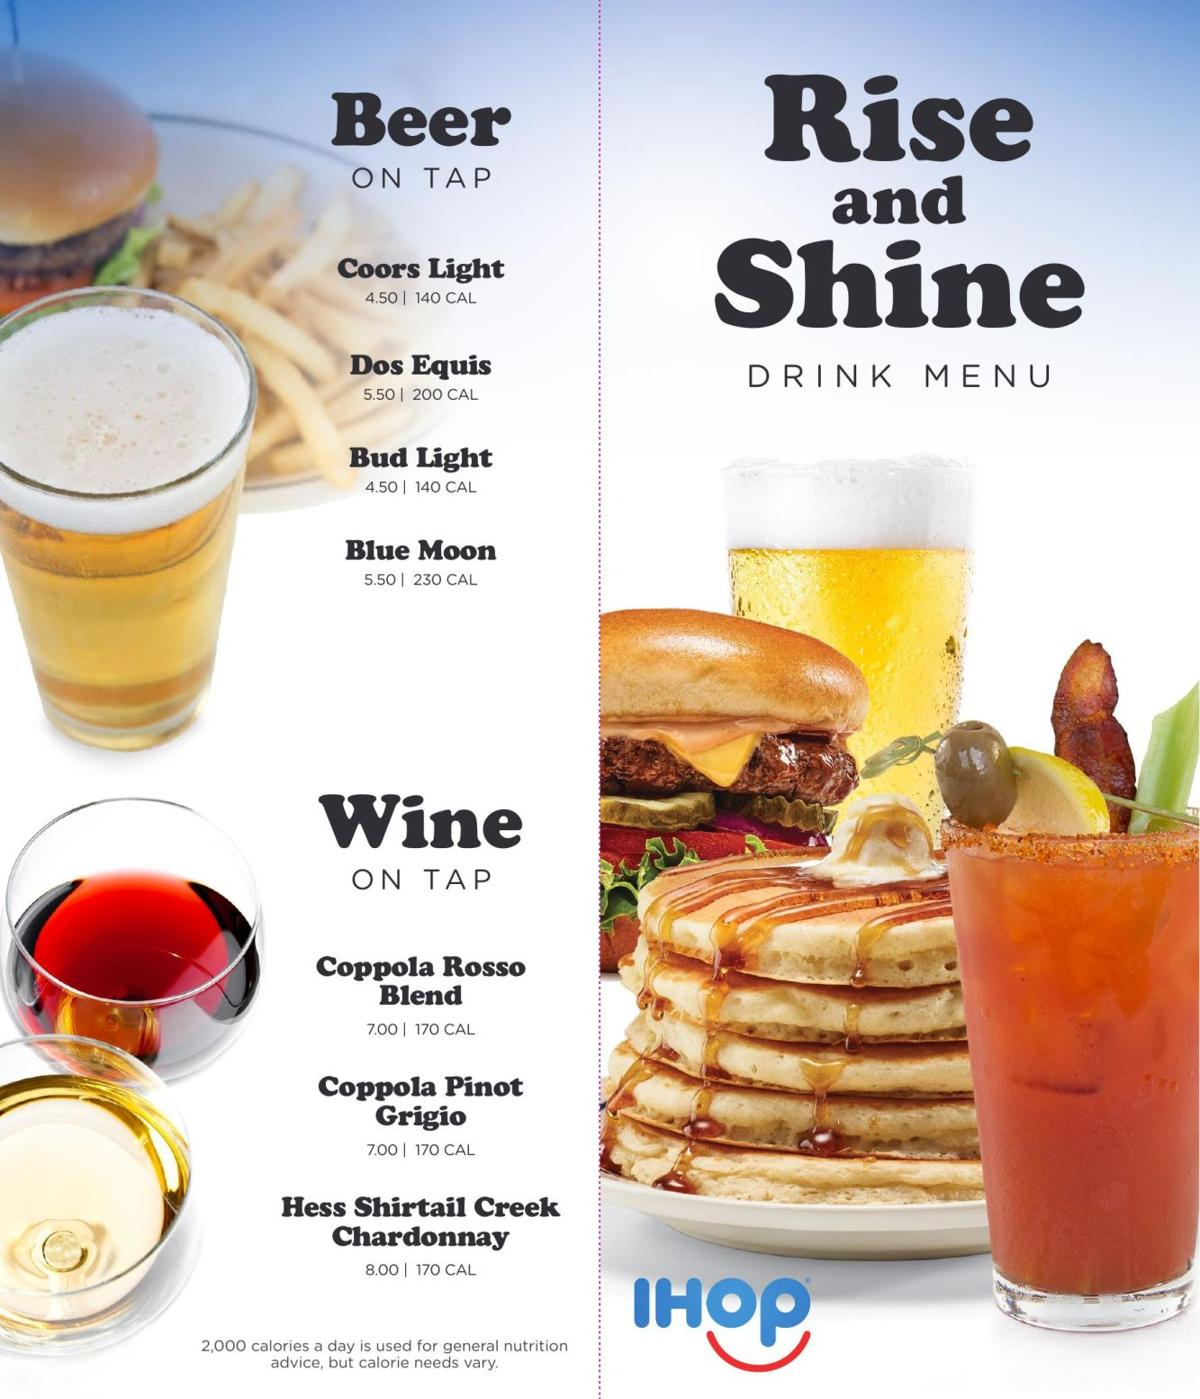 The Rise and Shine brunch-inspired bar menu